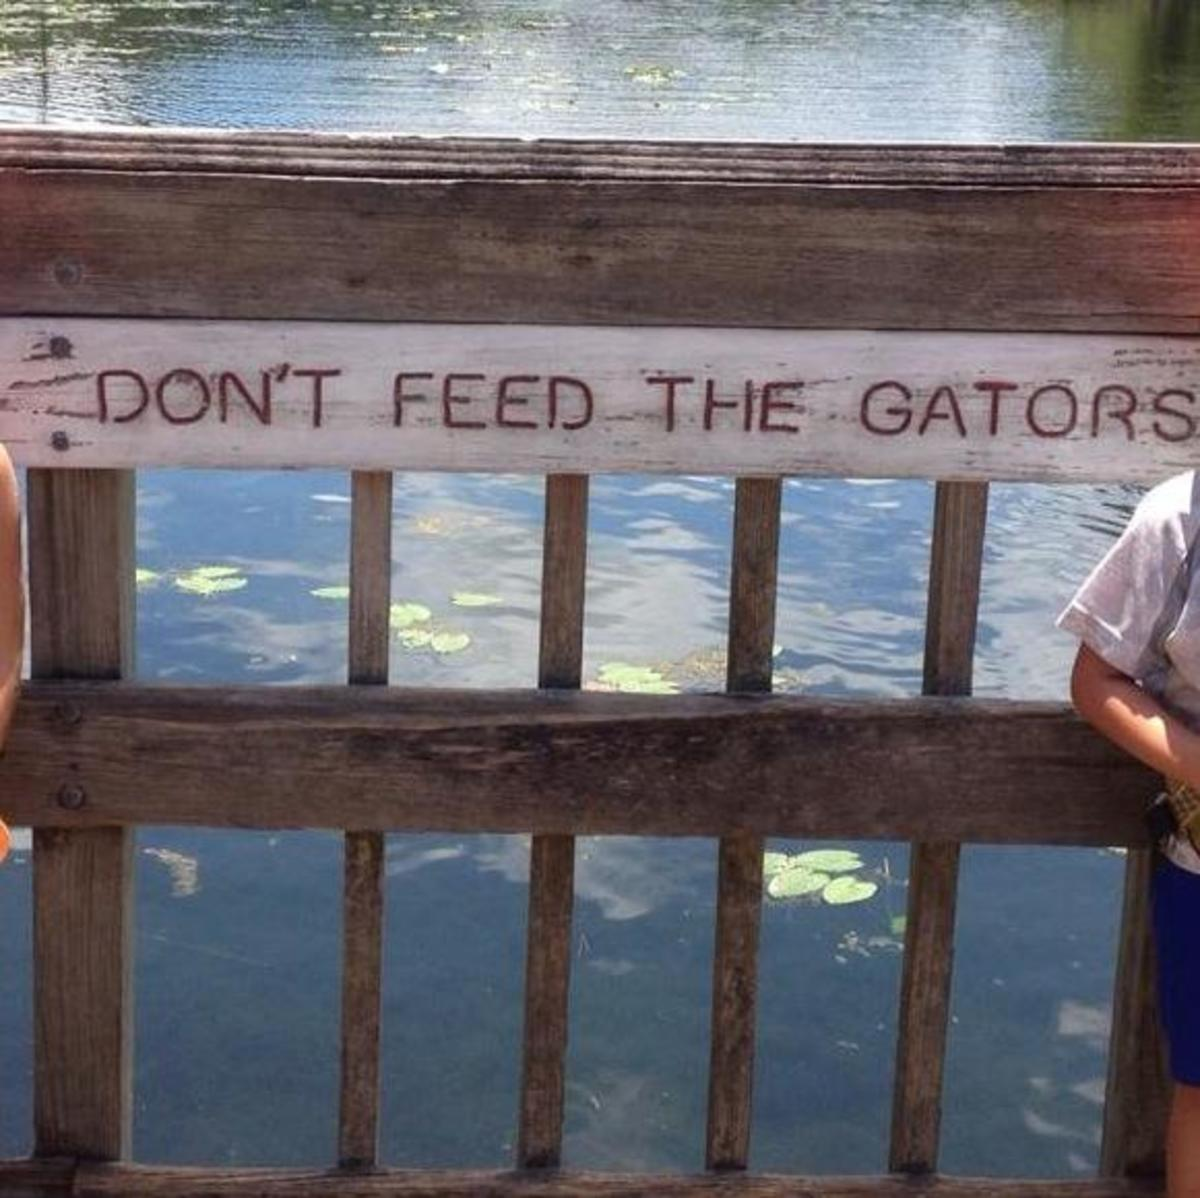 UNF's first forest ranger, John Golden, handmade this sign, which was stolen from the J.M. Golden Environmental Education Pavilion. Photo courtesy Amy Costa